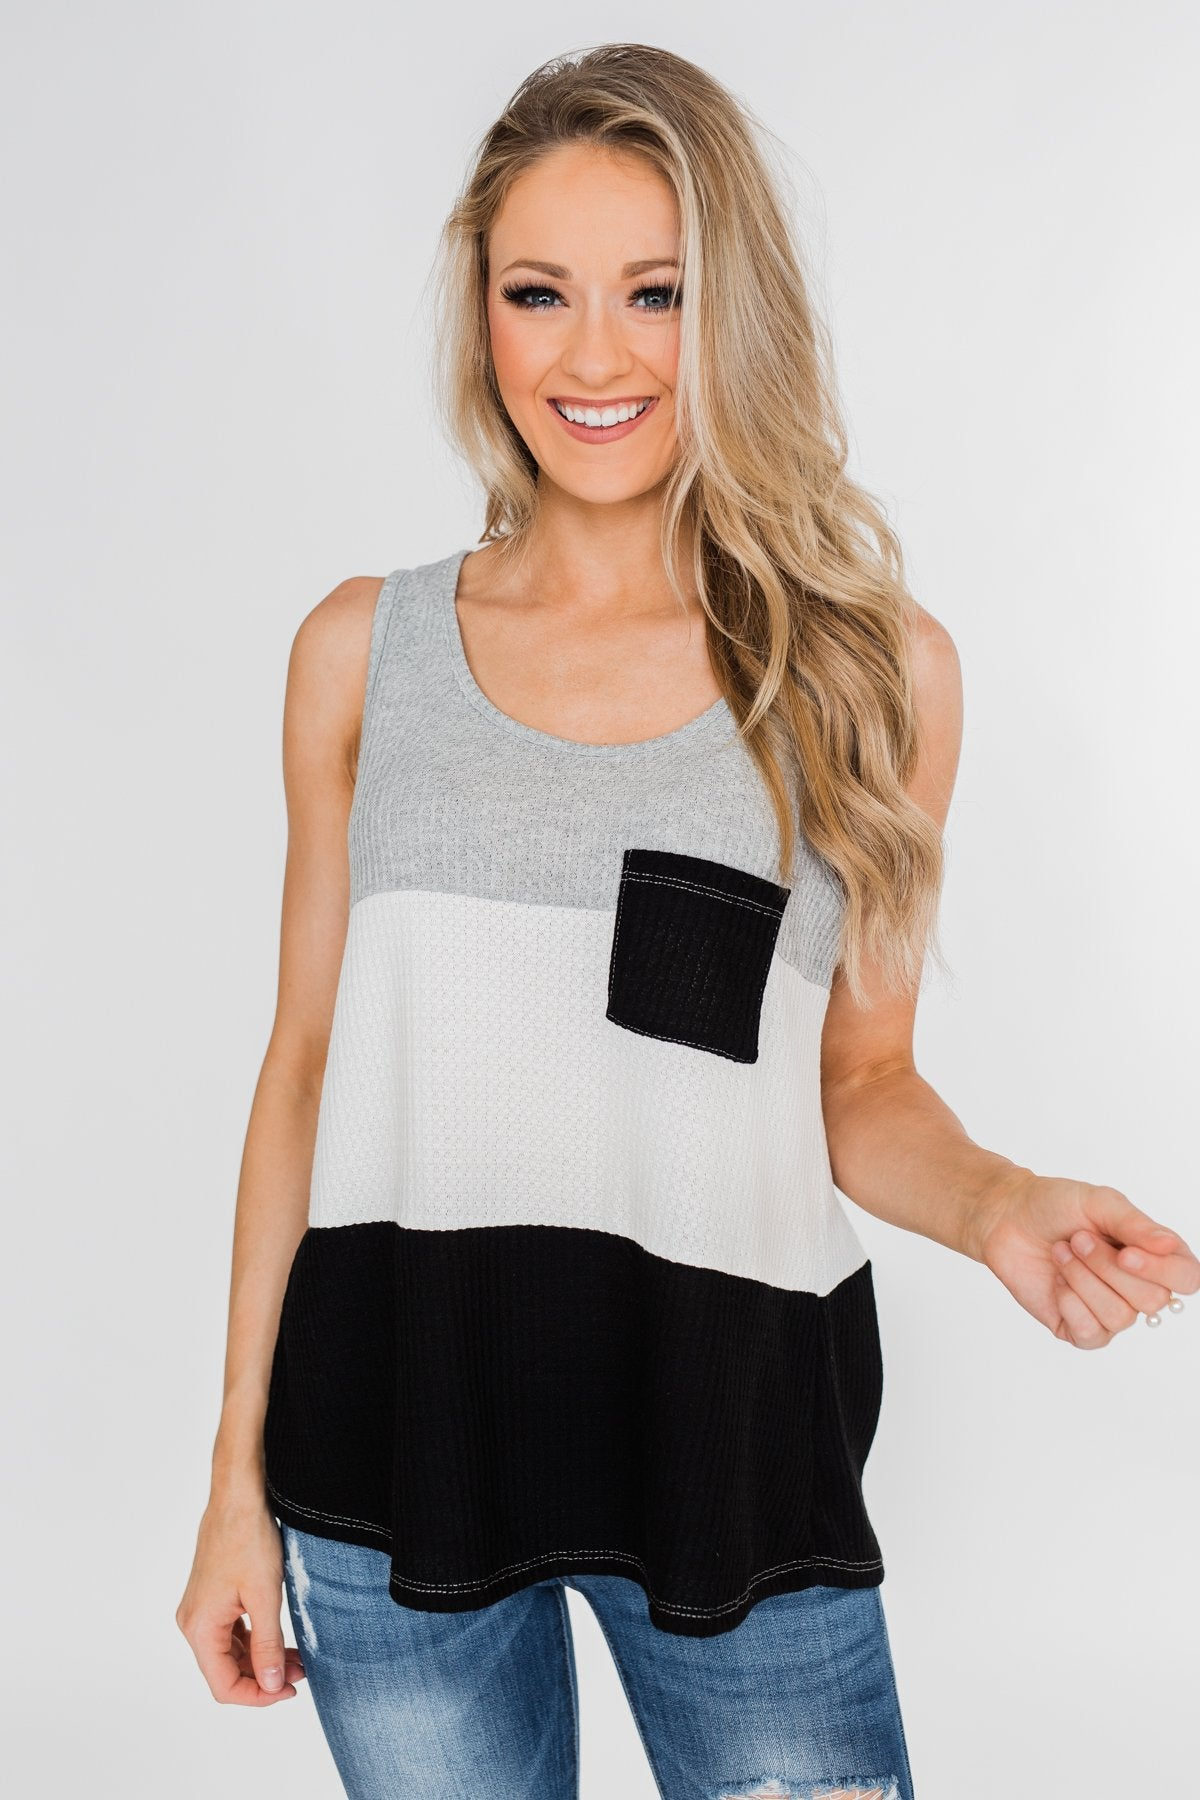 Waffle Knit Color Block Tank Top- Black, Grey, and White